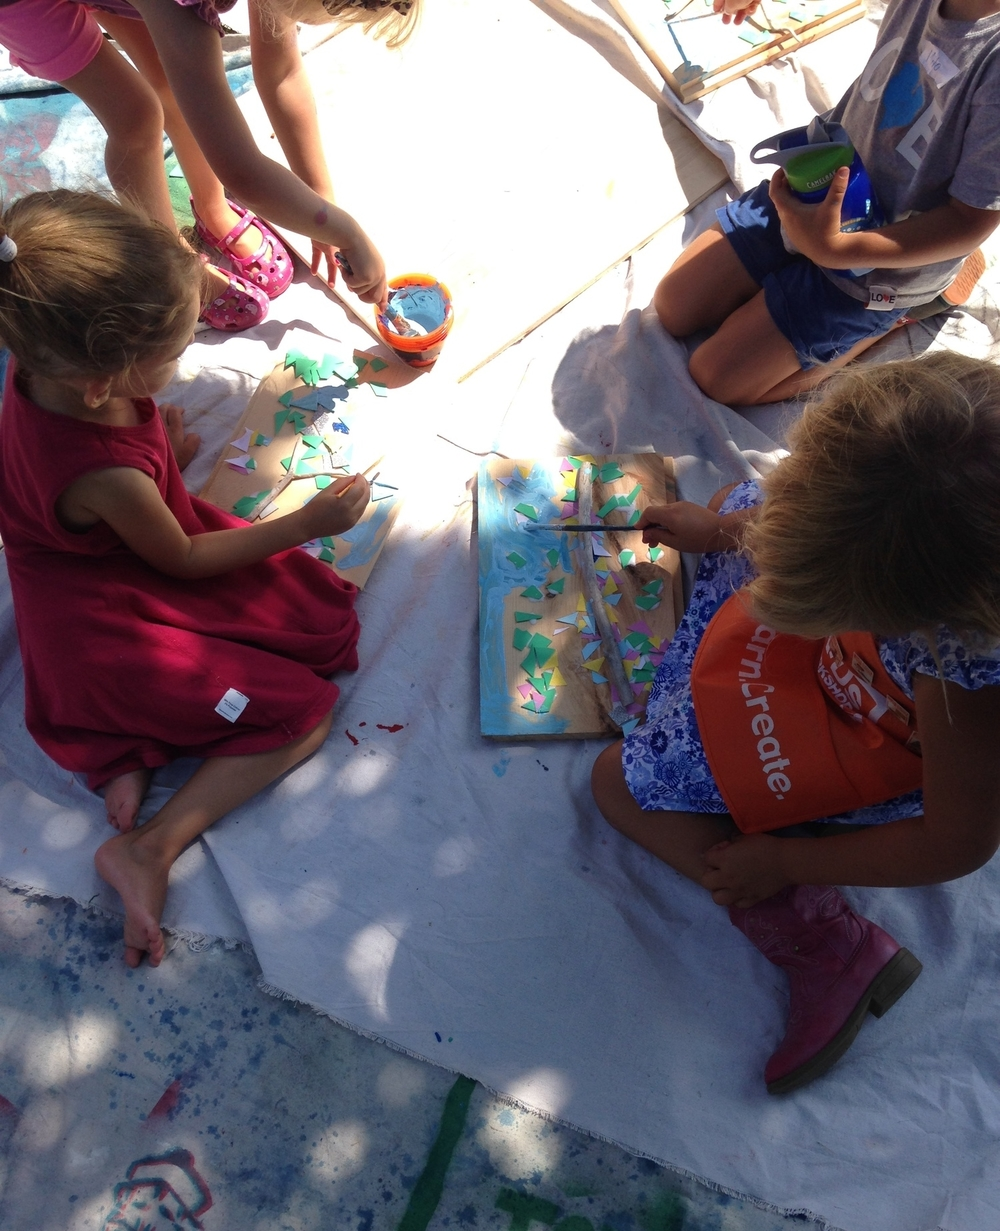 8/1/15 3-5 year olds making nature-inspired art in my backyard during a three day Wild art camp.If you're interested in signing your kids or yourself up for a private lesson, read more about it here: Private Lessons